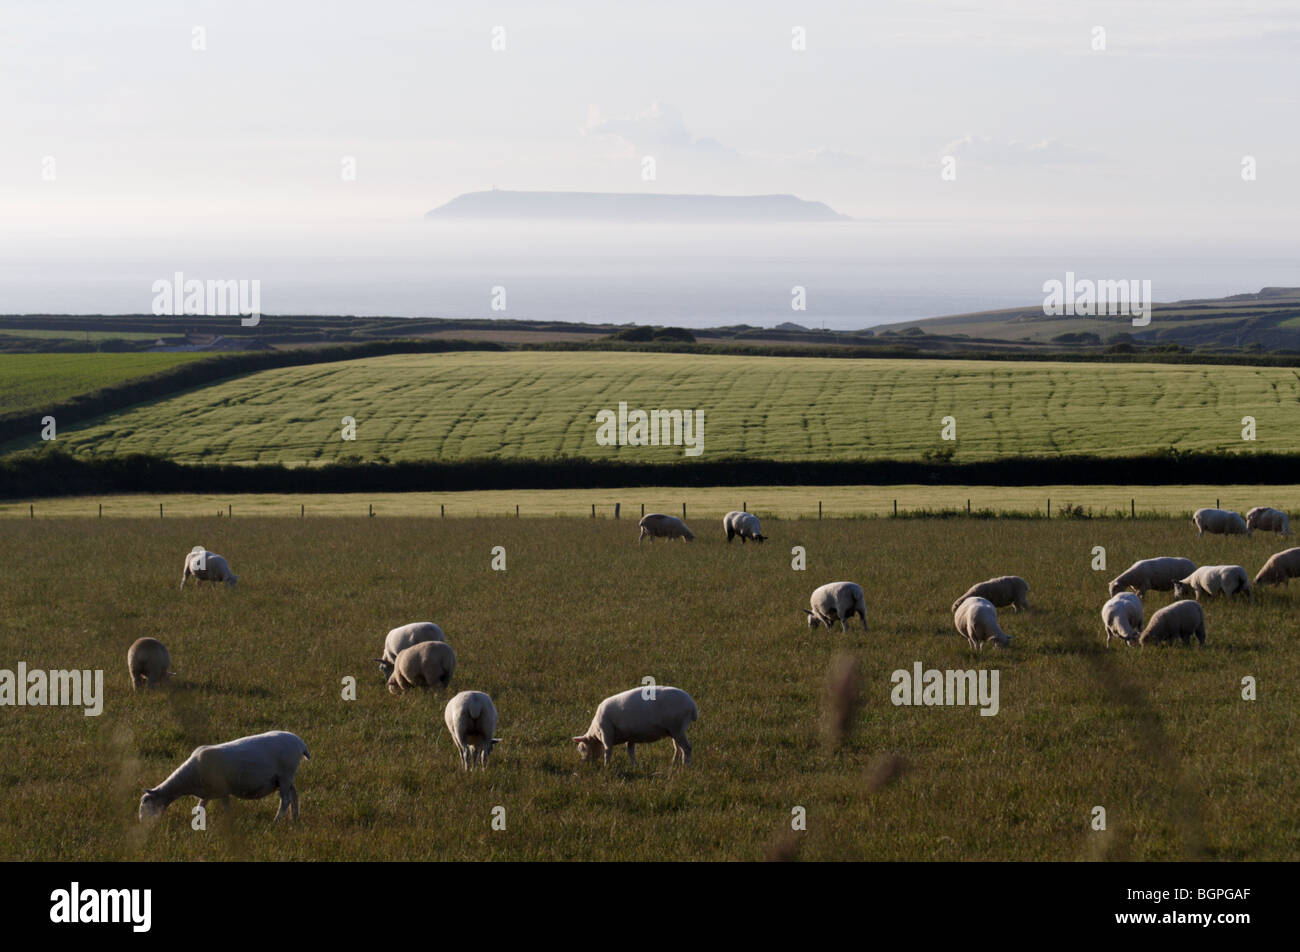 Lundy Island nestles in the misty sea with fields of sheep in the foreground - Stock Image